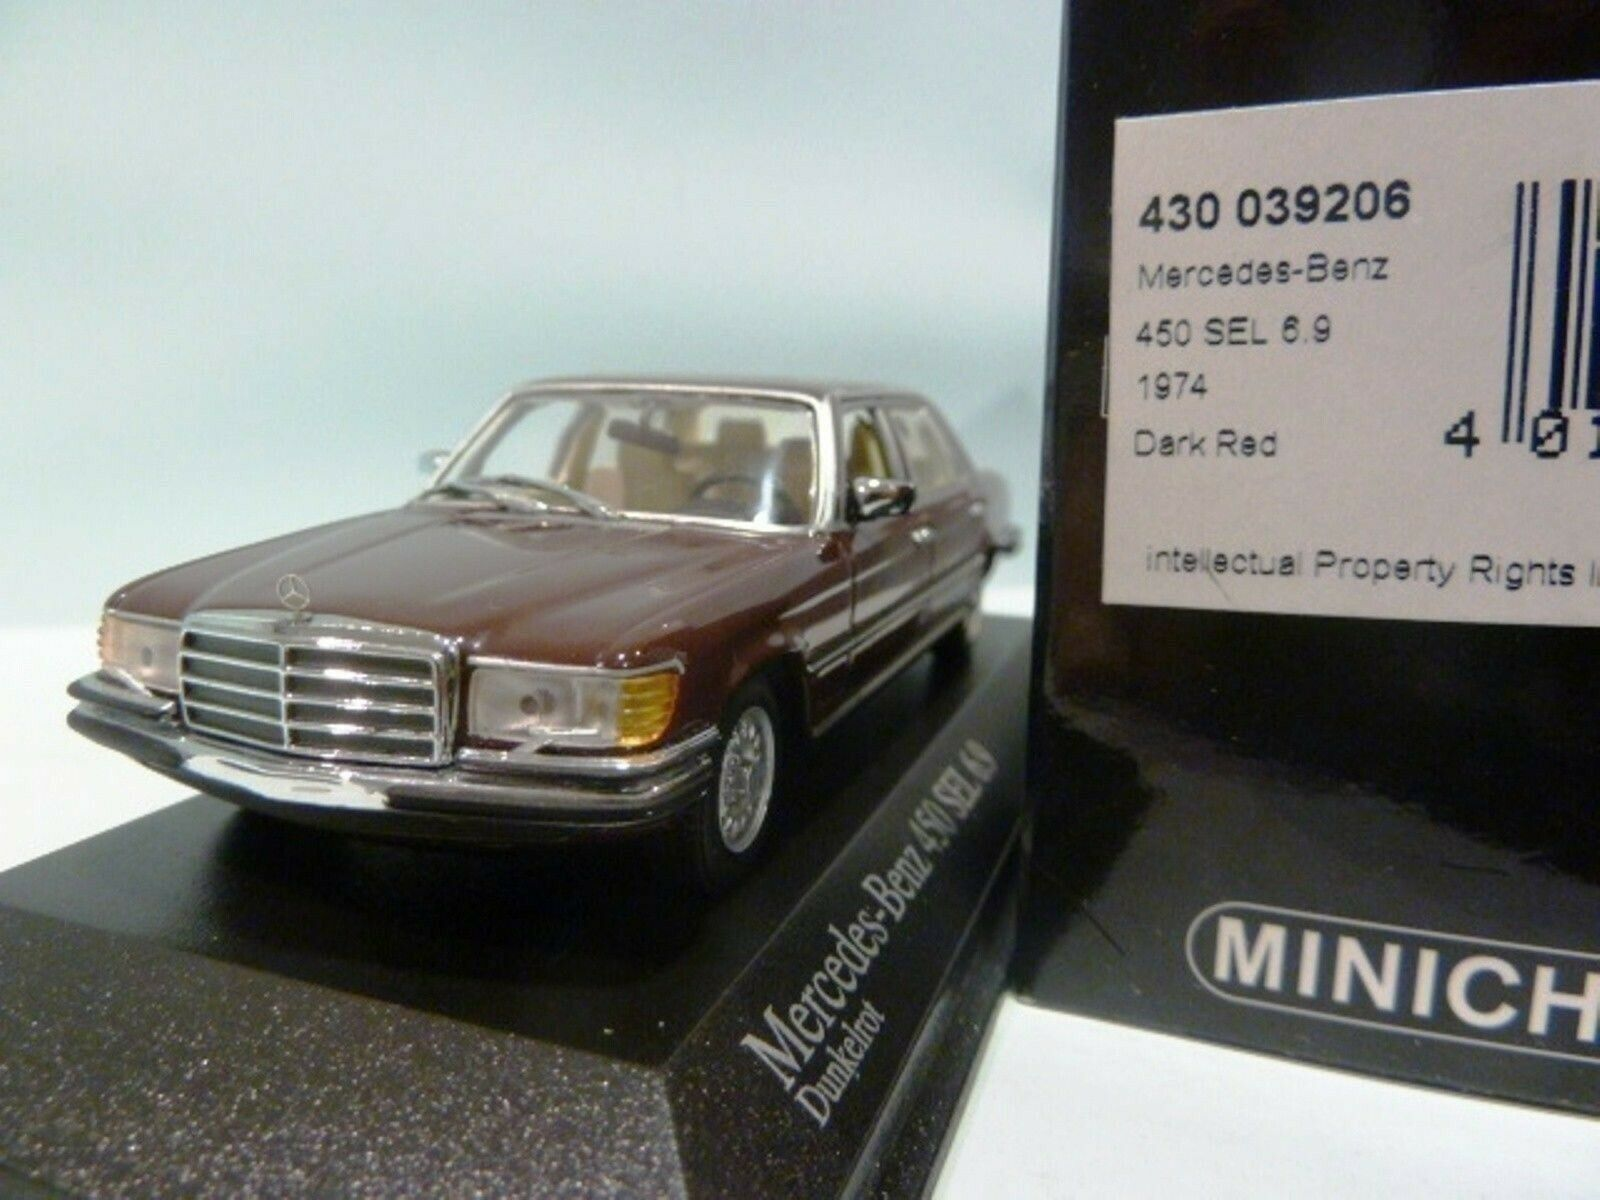 WOW EXTREMELY RARE Mercedes W116 450SEL 1974 R.Red 1 43 Minichamps-300,350,560